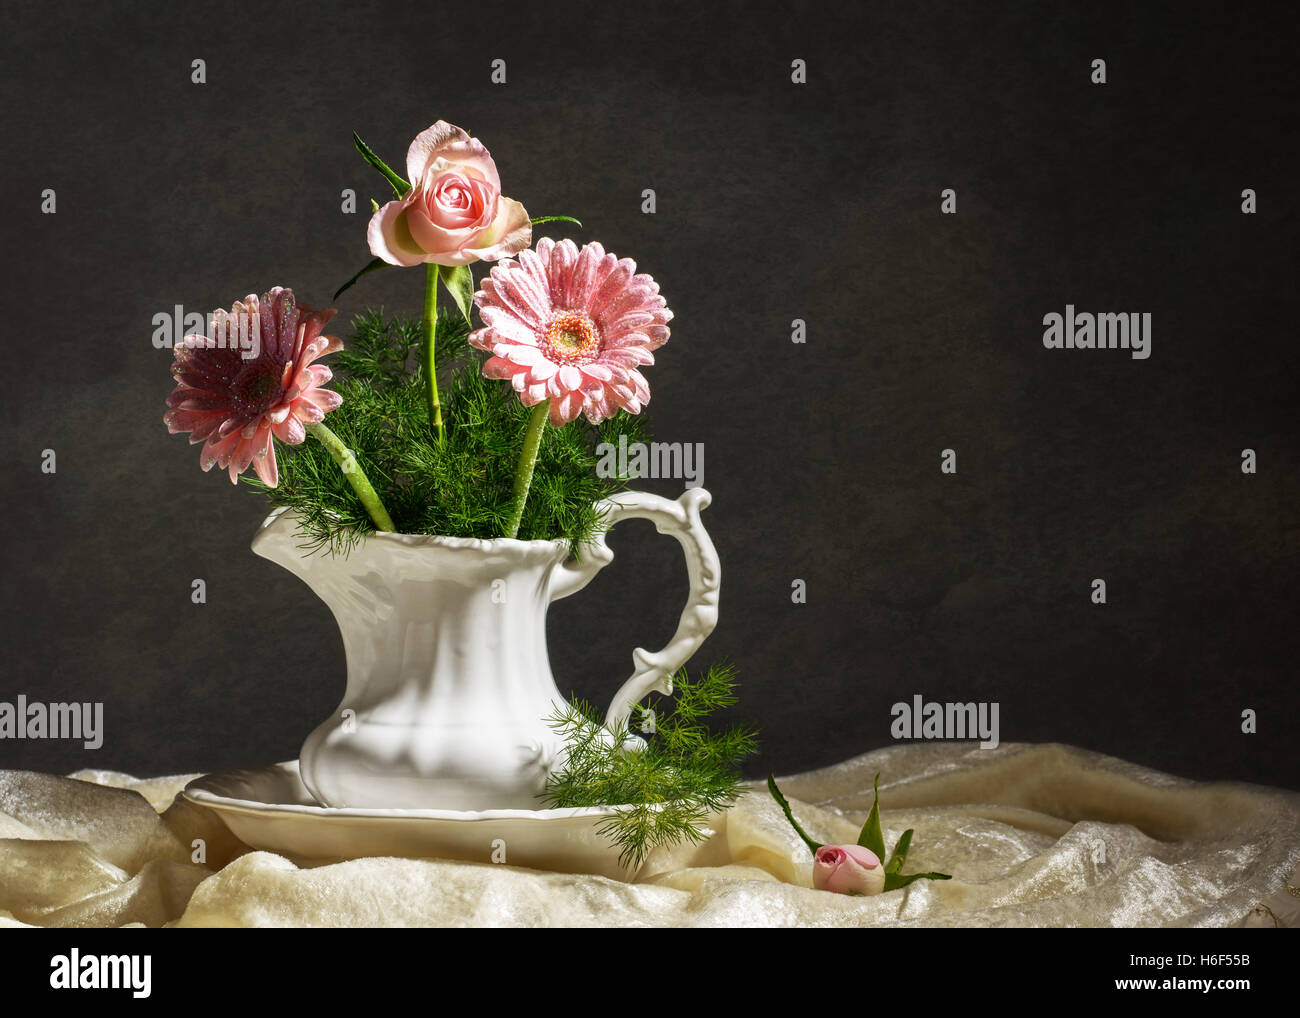 artistic lighting. Flower Arrangement In Jug With Artistic Lighting I